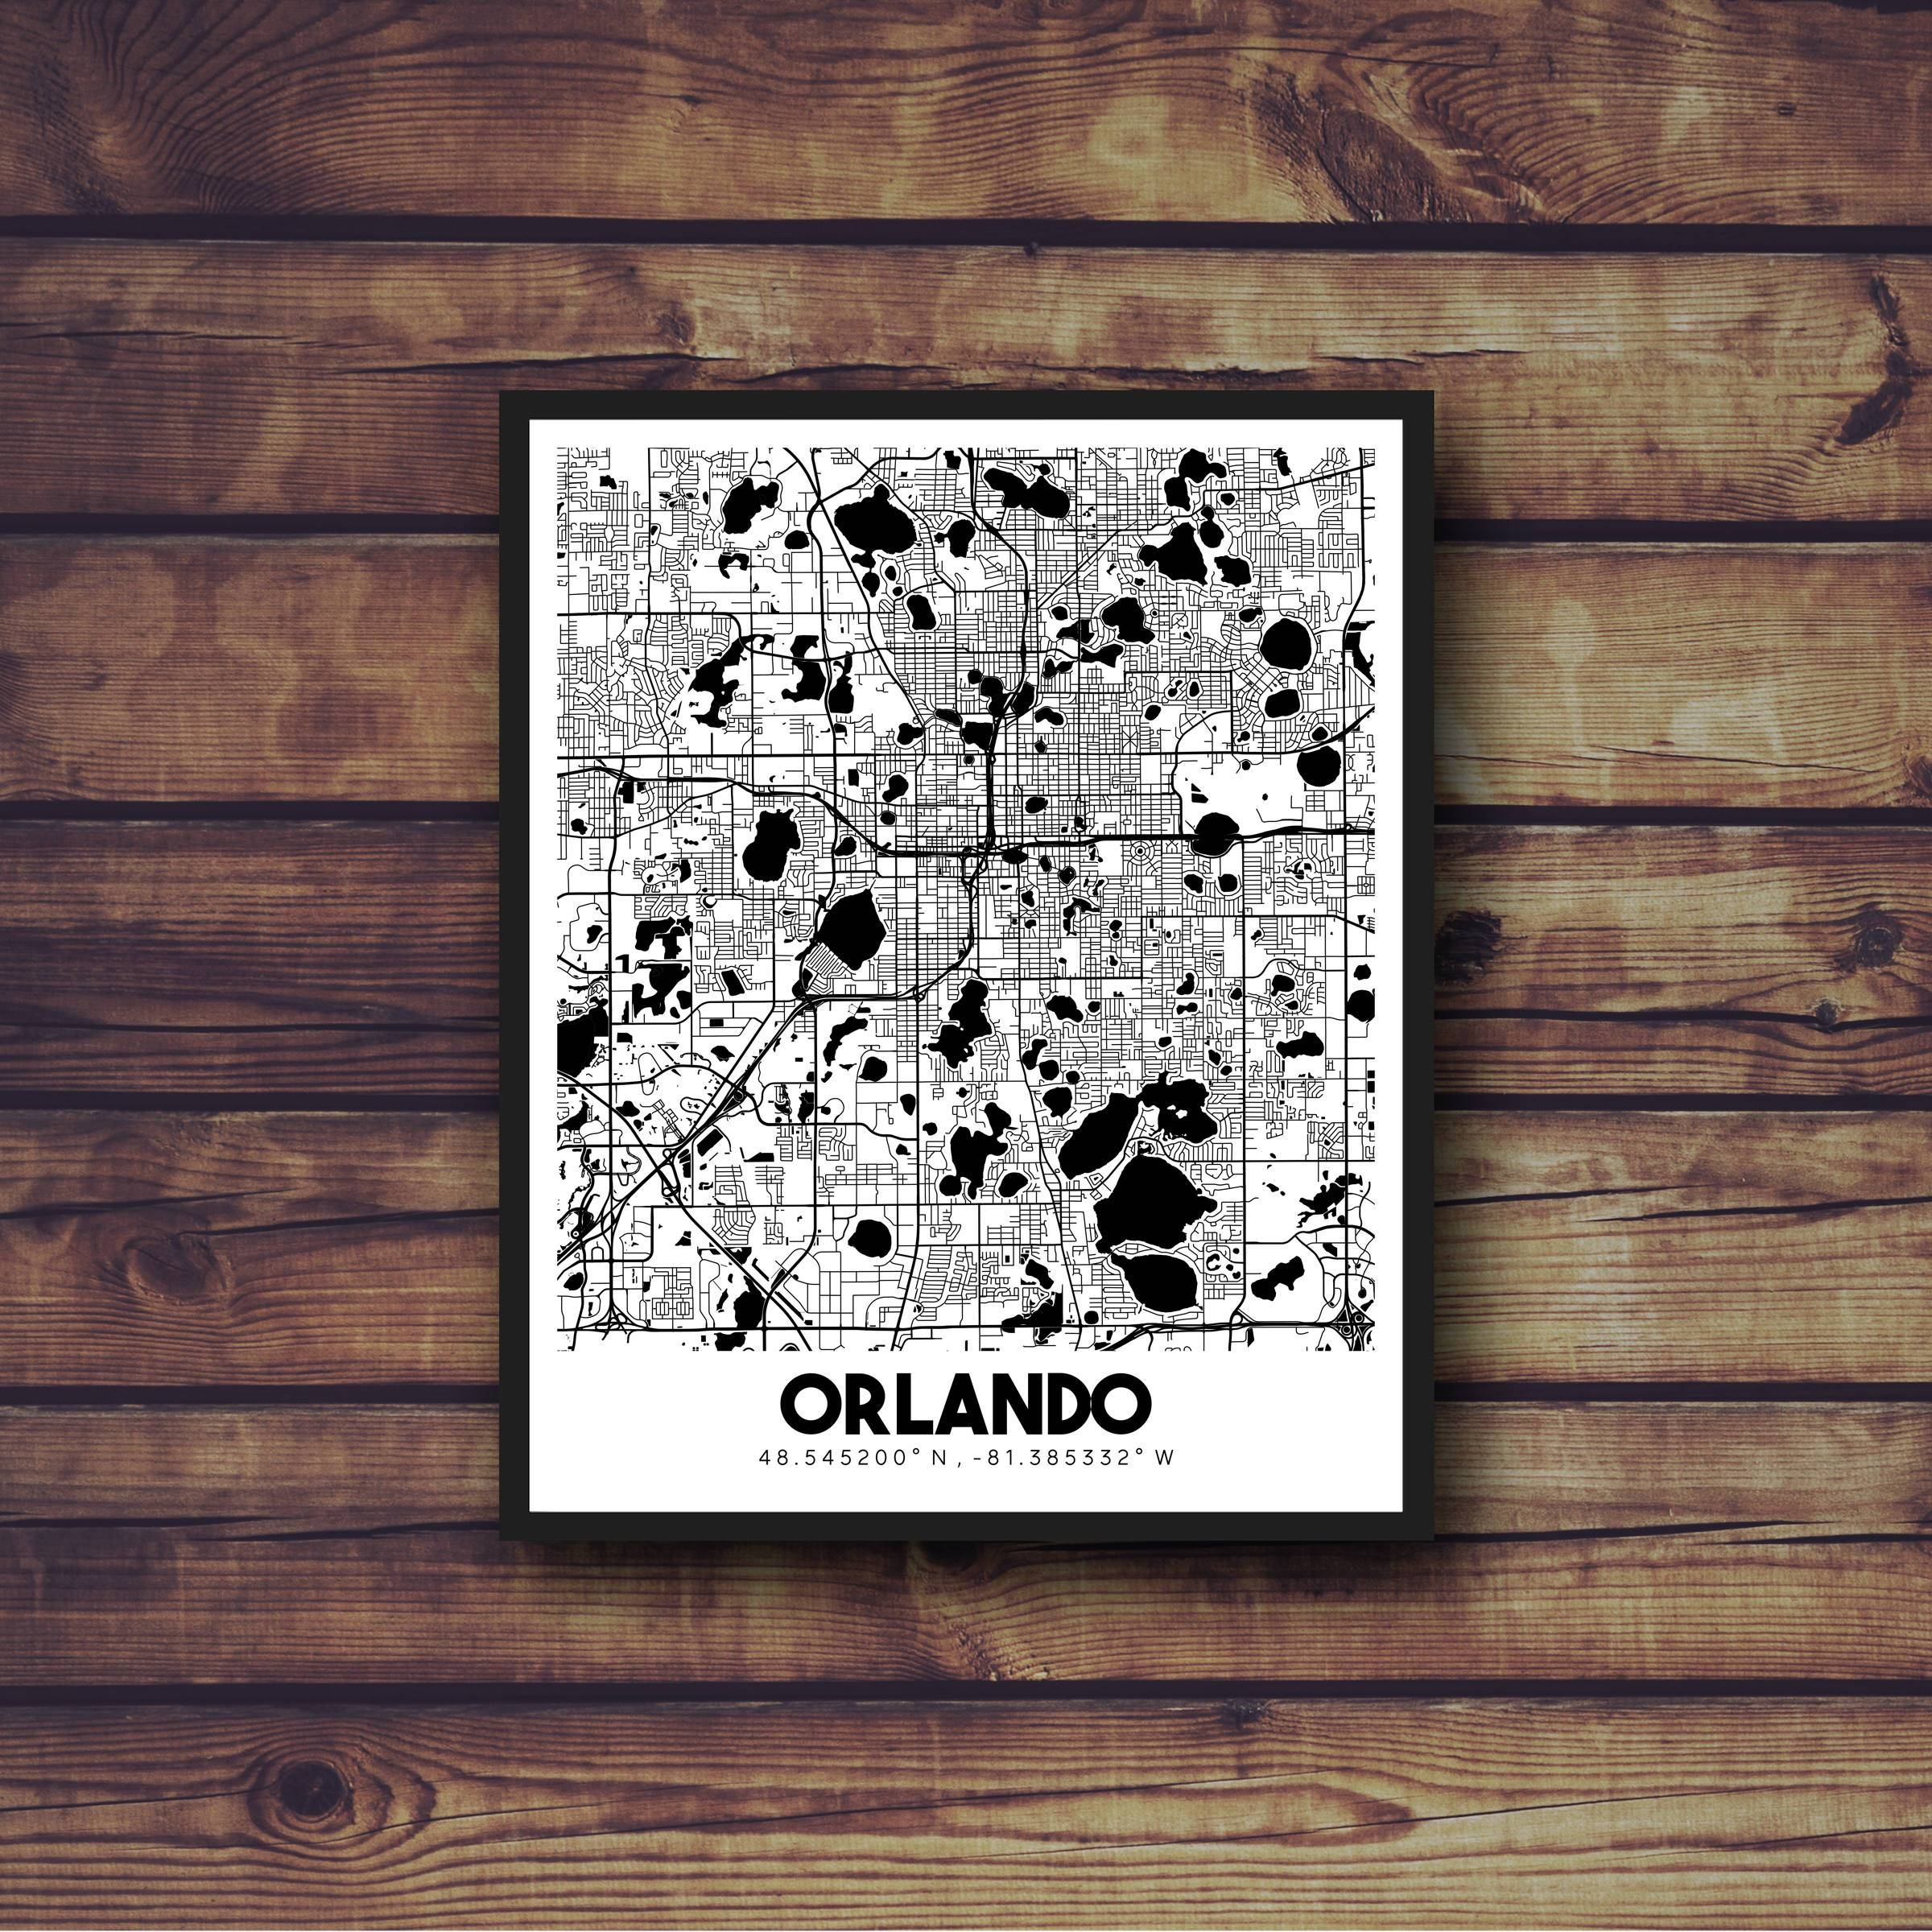 Orlando Florida Downtown Street Map Orlando Florida City Map Within Most Up To Date Florida Map Wall Art (View 14 of 20)